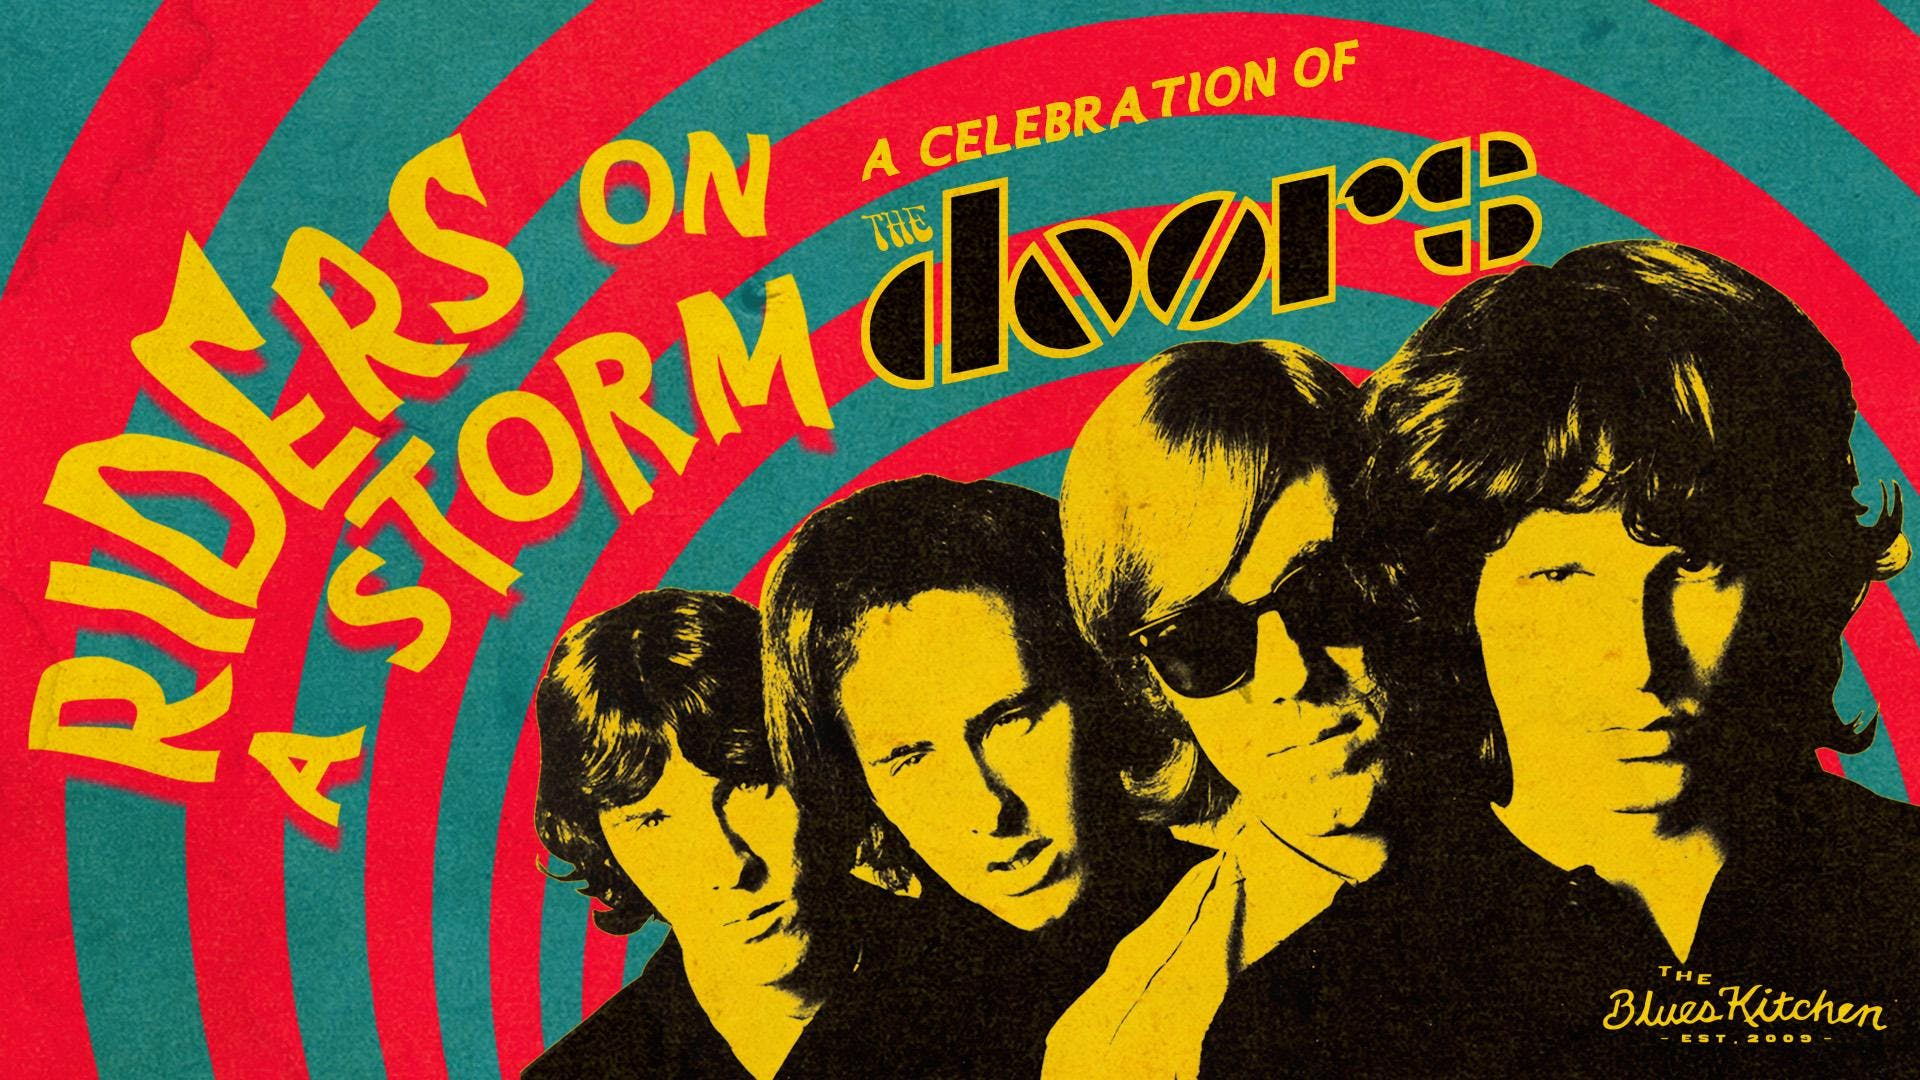 May Bank Holiday Riders On The Storm A Celebration Of The Doors